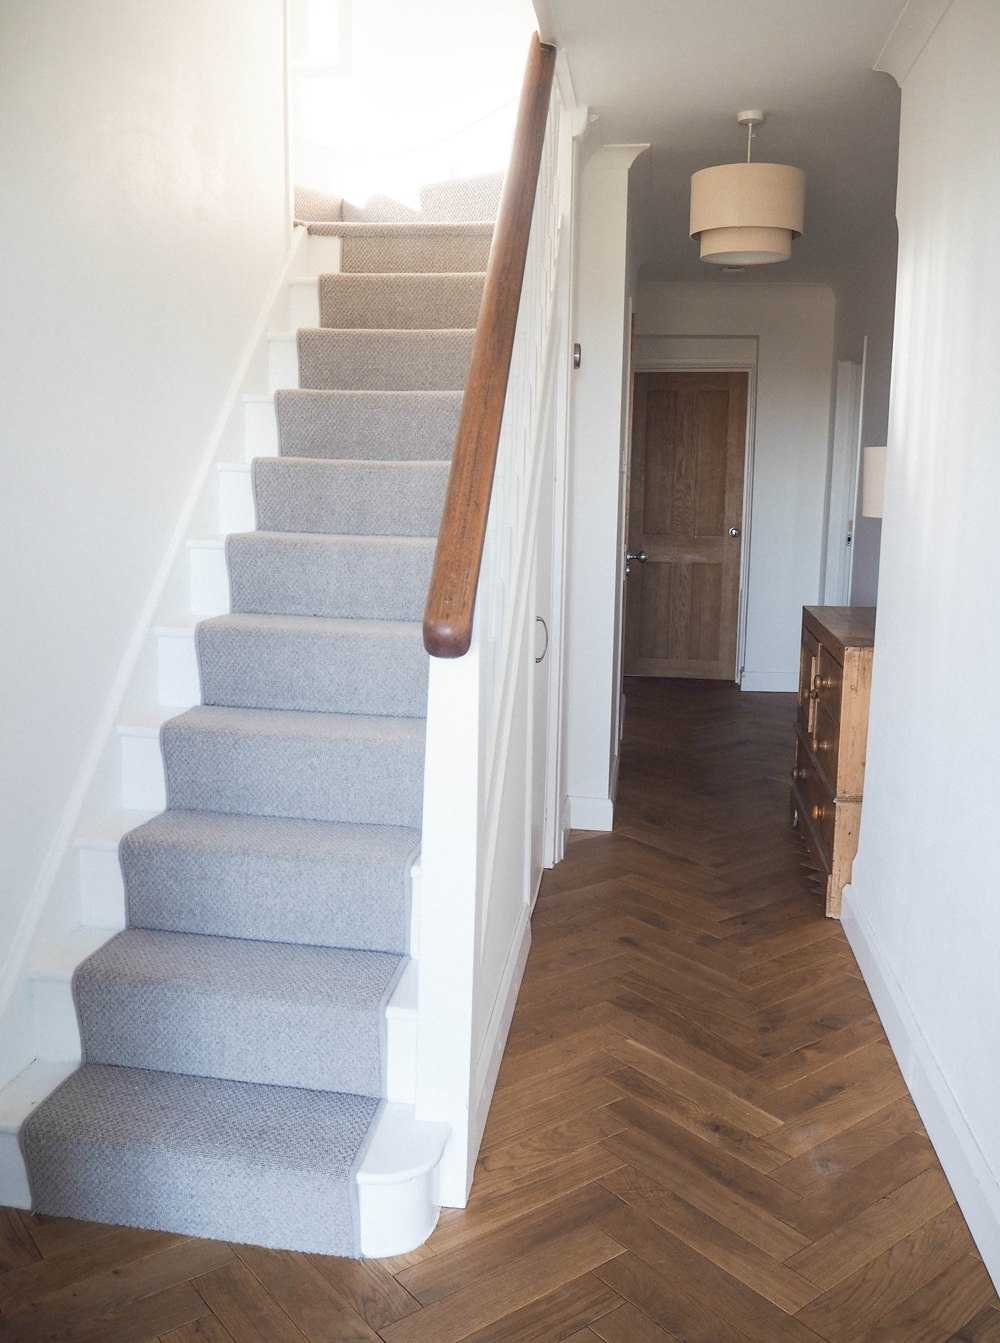 Hallway Renovation In A 1930S Art Deco House Whimsical   Carpet For Stairs And Hallway   Hardwood   Stylish   Upstairs   Popular   Hollywood Style